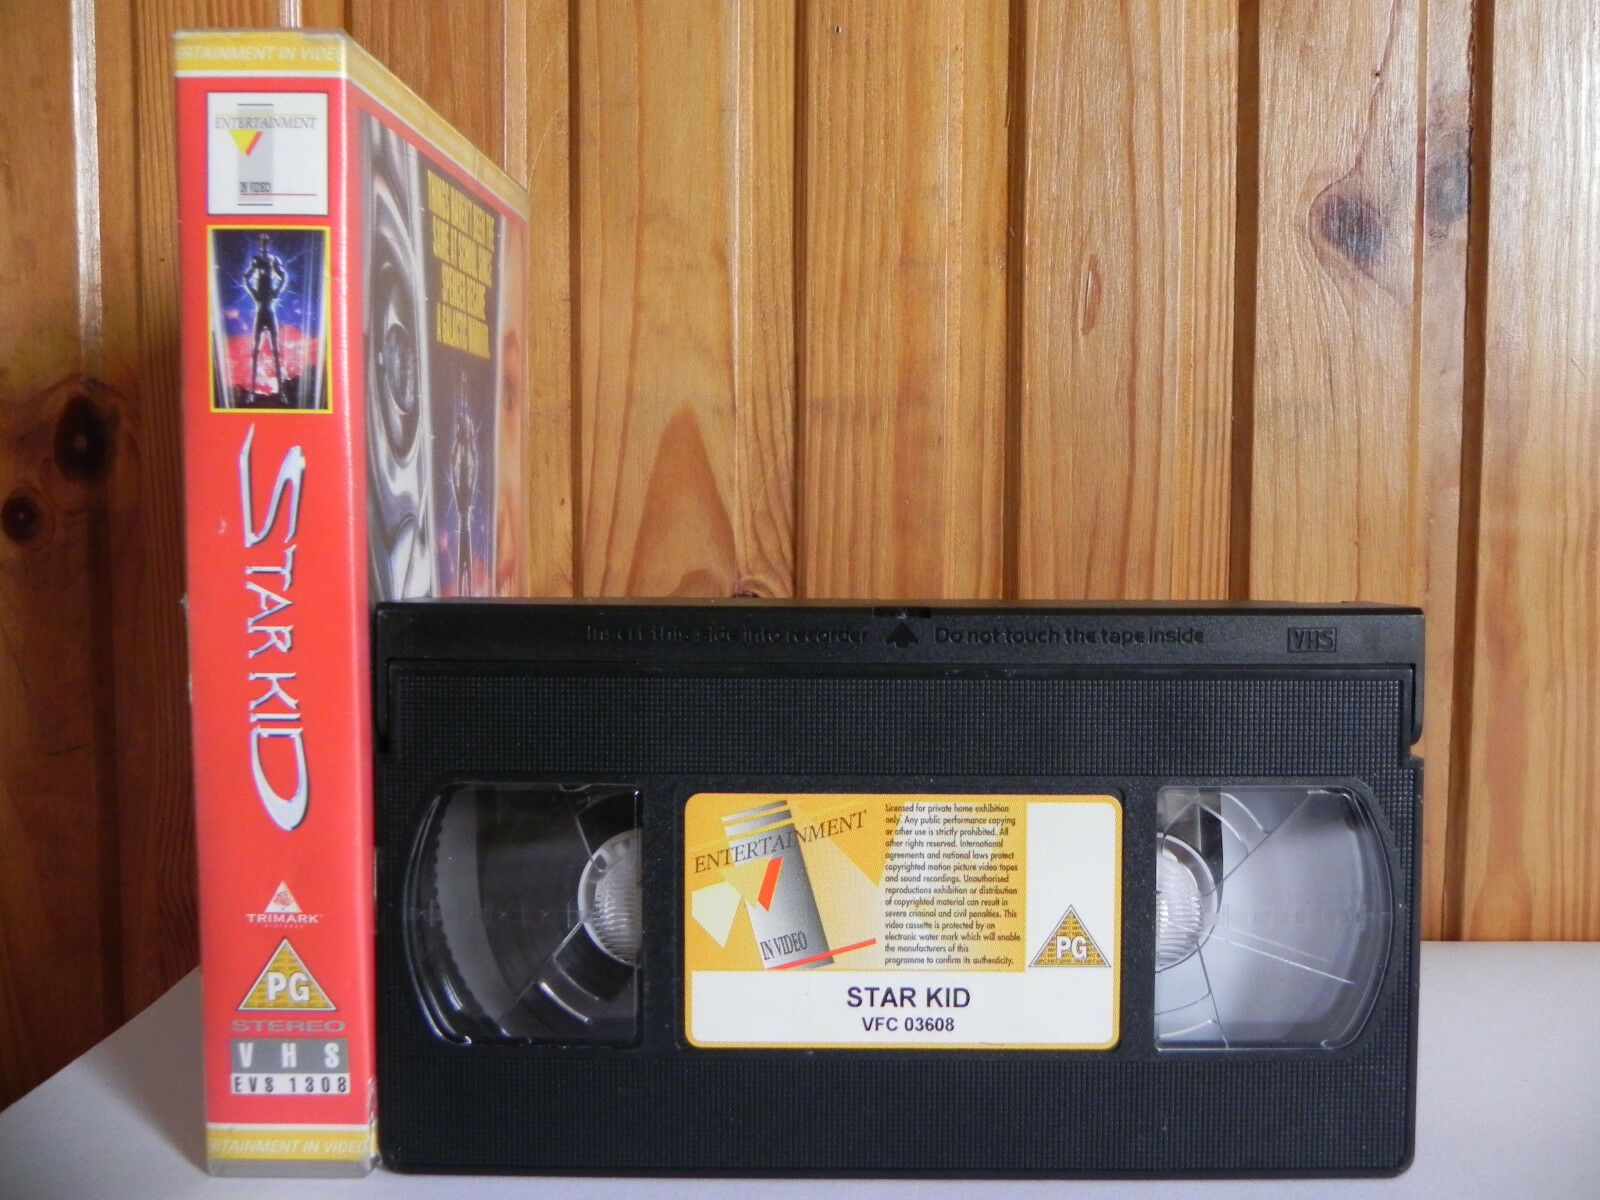 Star Kid - Entertainment In Video - Family - Sci-Fi - Joseph Mazzello - Pal VHS